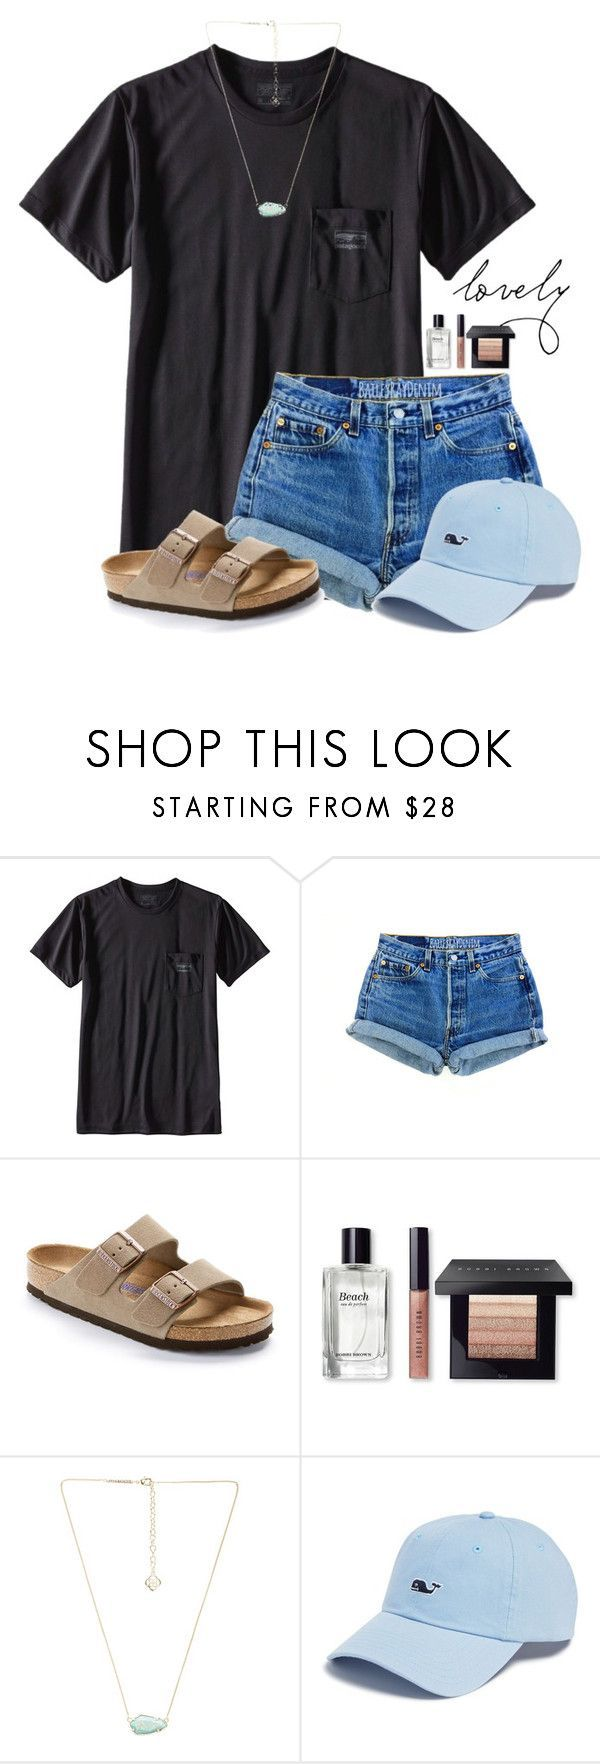 """~l o v e l y~"" by victoriaann34 ❤ liked on Polyvore featuring Patagonia, Birkenstock, Bobbi Brown Cosmetics, Kendra Scott and Vineyard Vines"